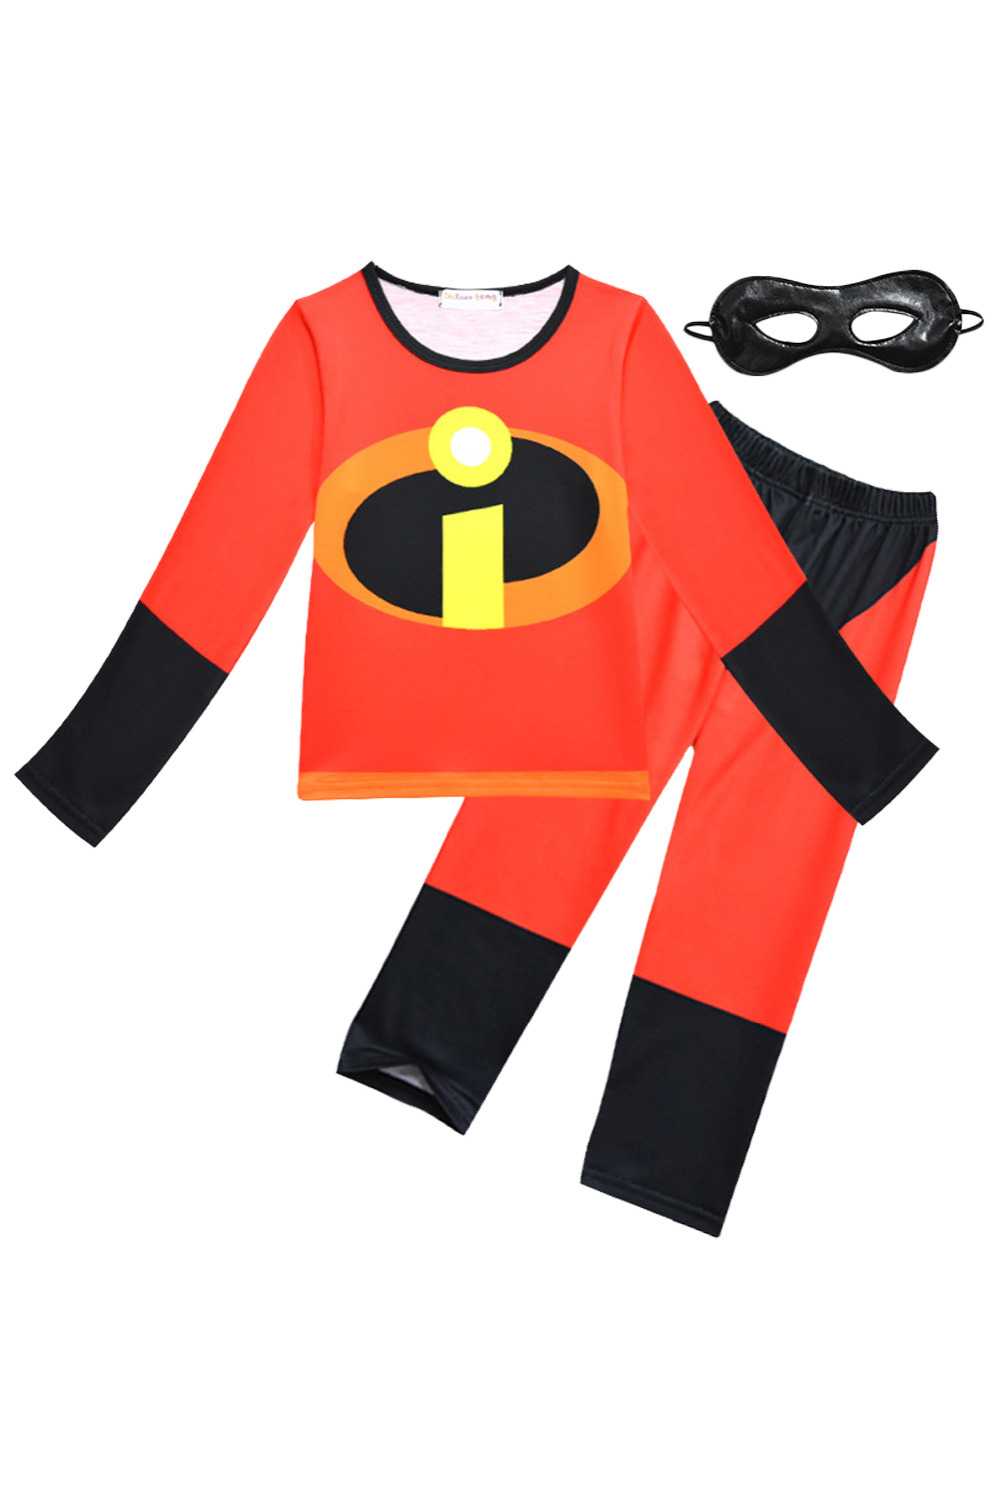 The Incredibles 2 Toddler Cosplay Costume Dress Up The Incredibles Pajamas Sleepwear Cute Homewear for Kids Children